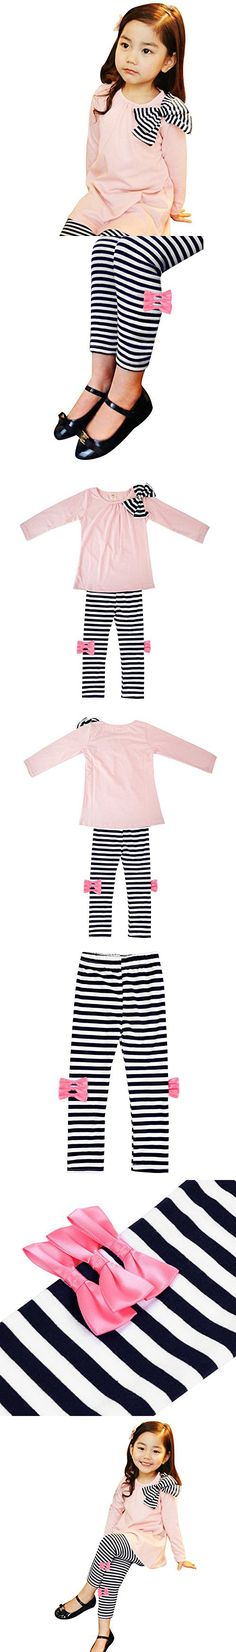 Lisli New Kids Girls Bow Striped Leggings Suit Long Sleeve Shirts Tops Sets Two-piece Suit (5-6Y(130))